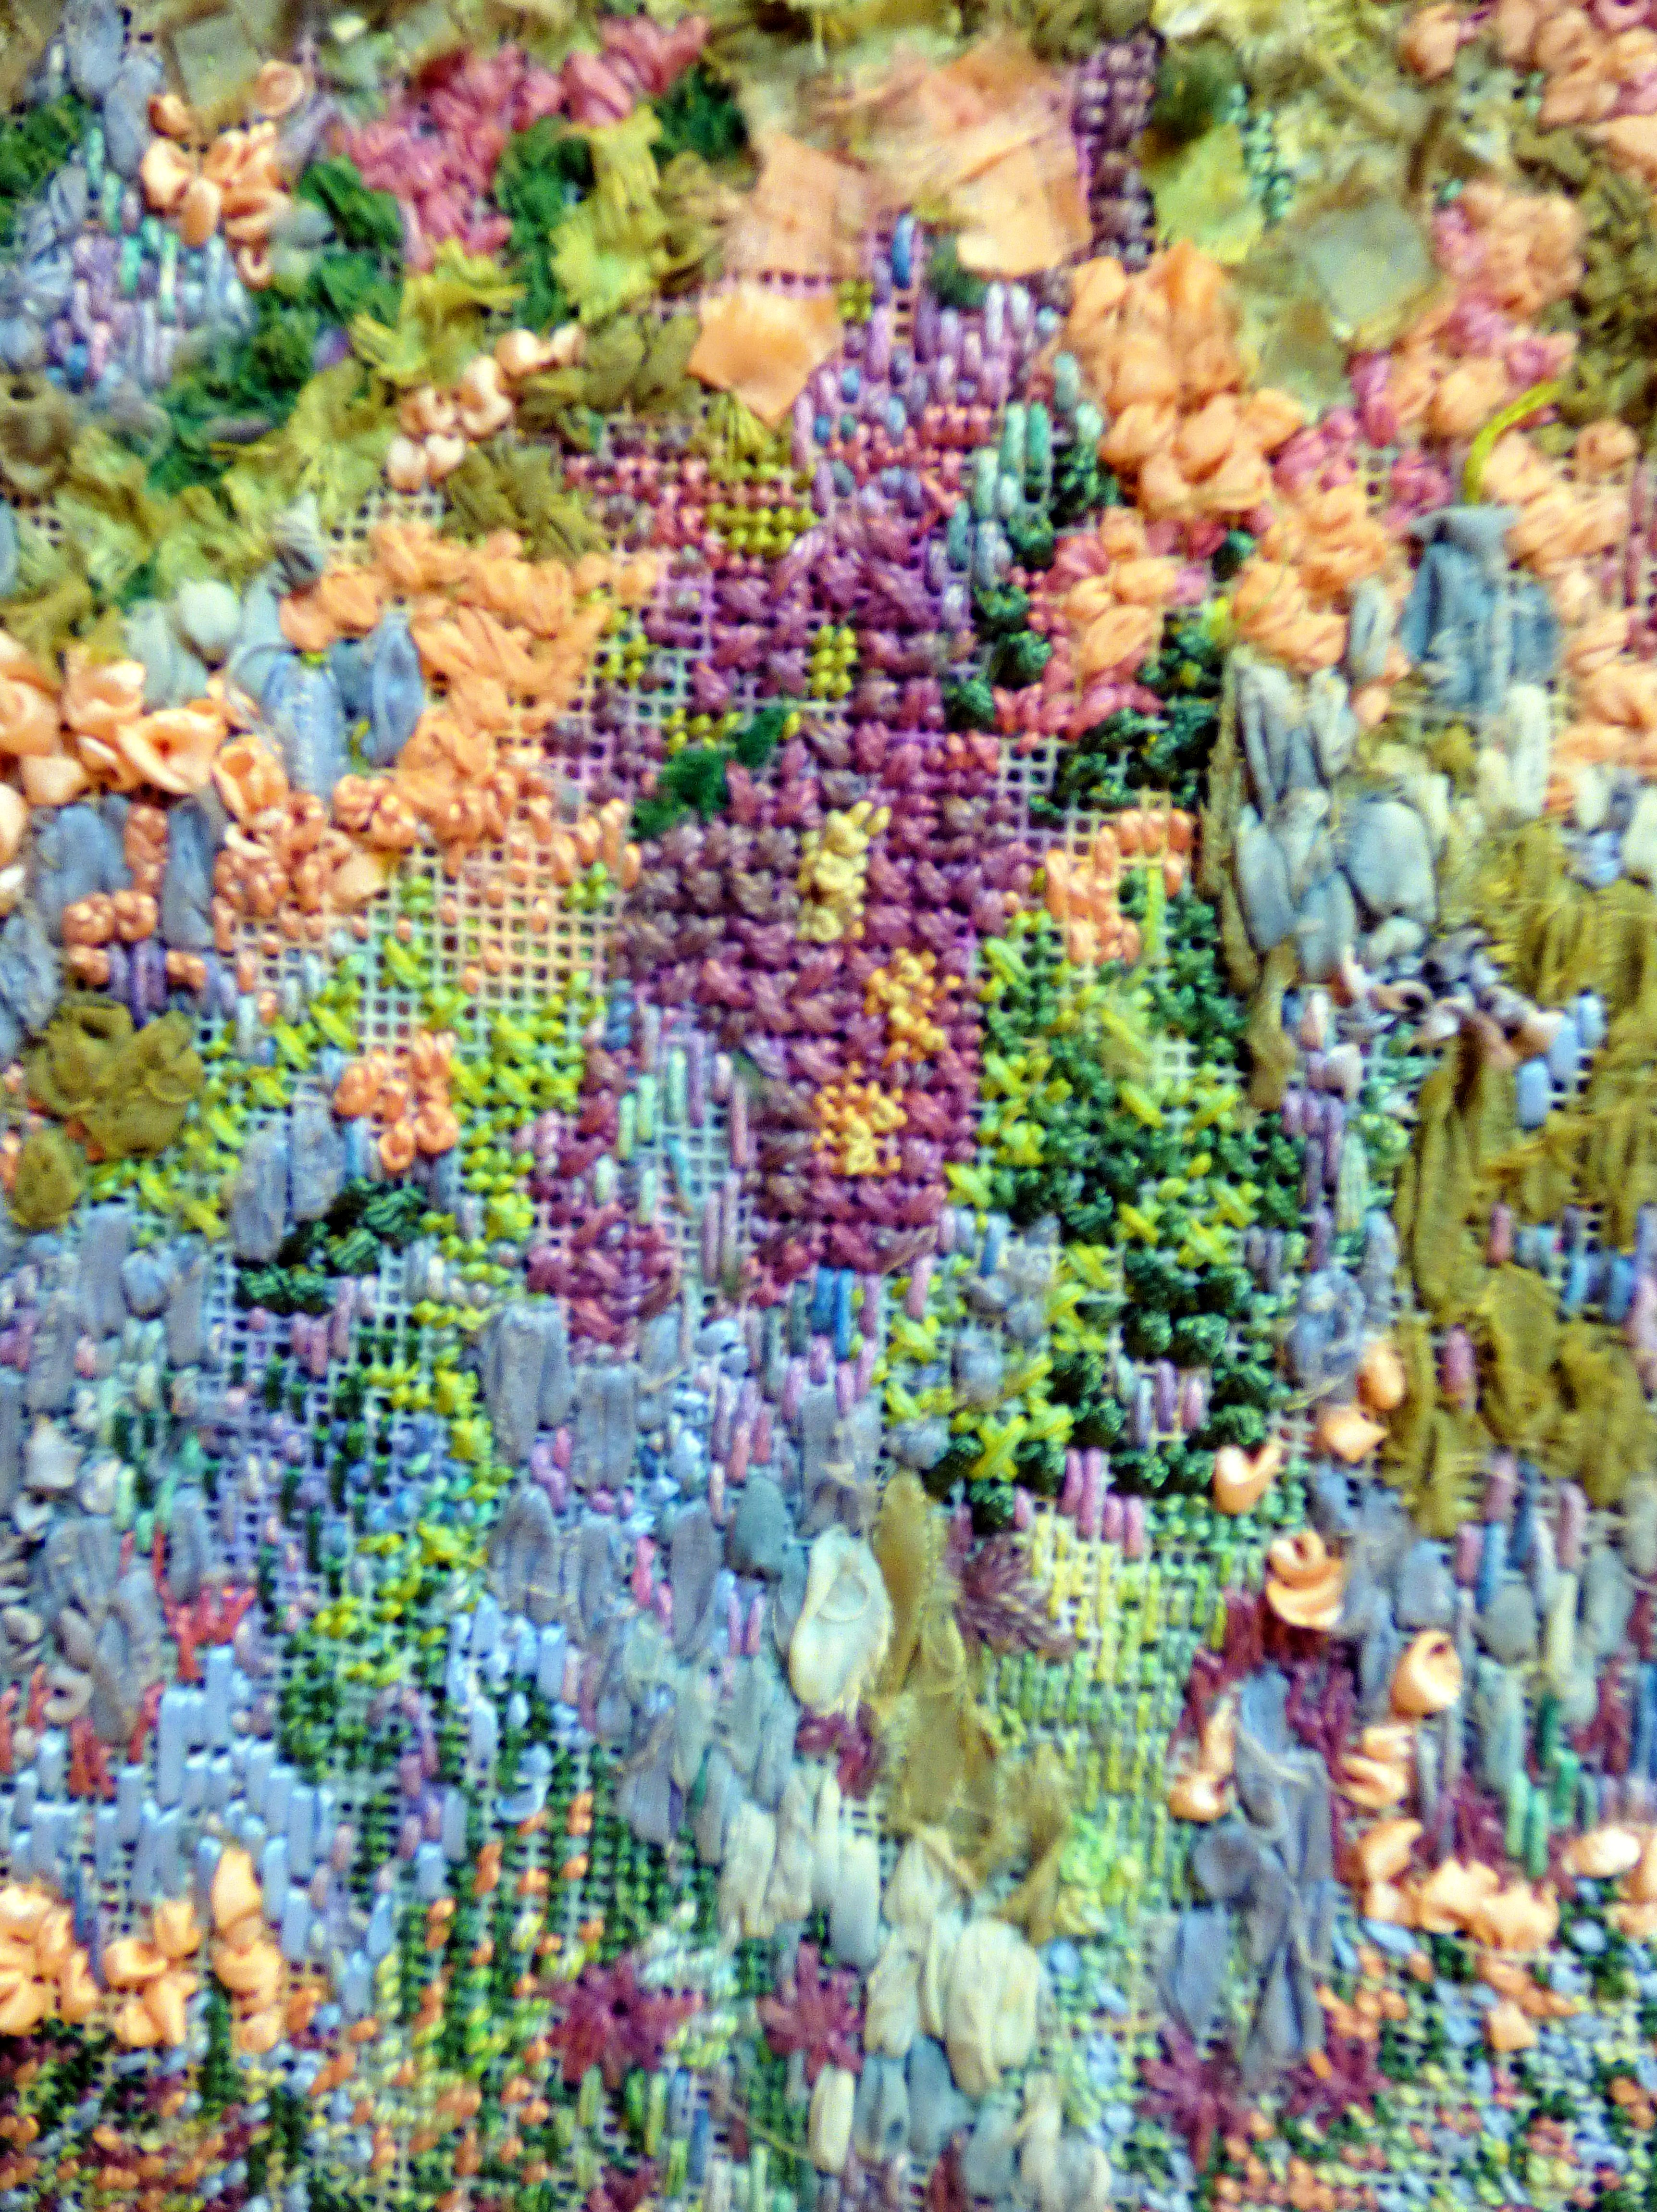 detail of THE GARDEN by June Hodgkiss at 60 Glorious Years exhibition 2016